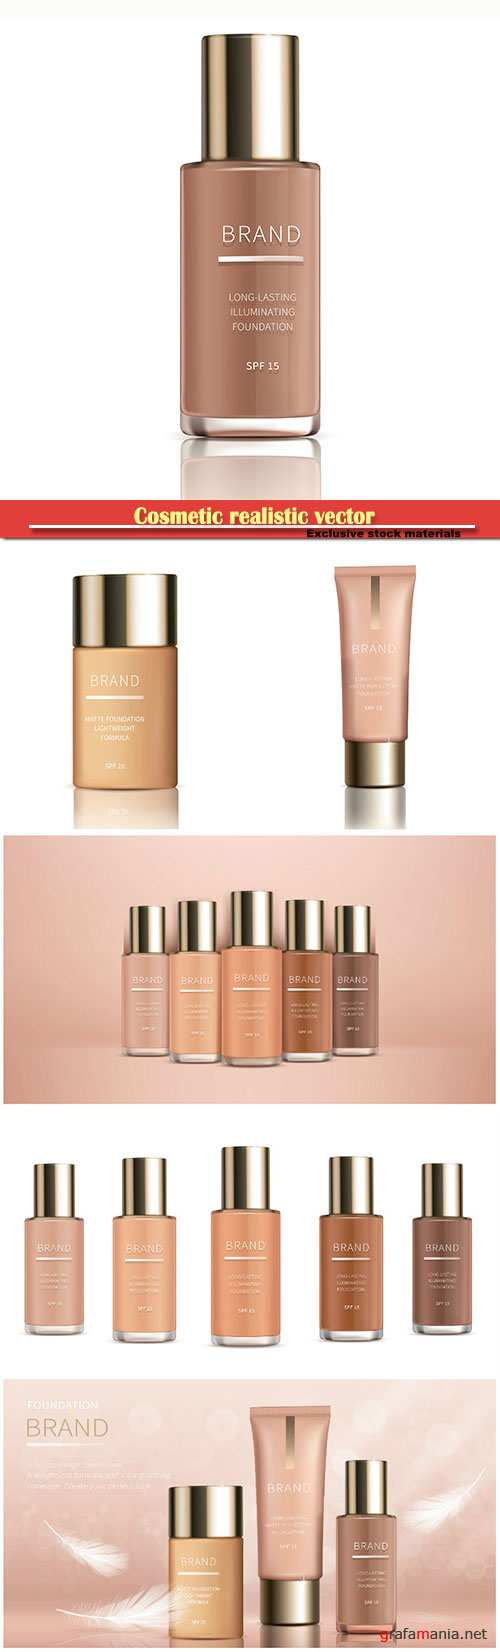 Cosmetic realistic vector, foundation for perfect makeup, decorative cosmetics, colorstay foundation